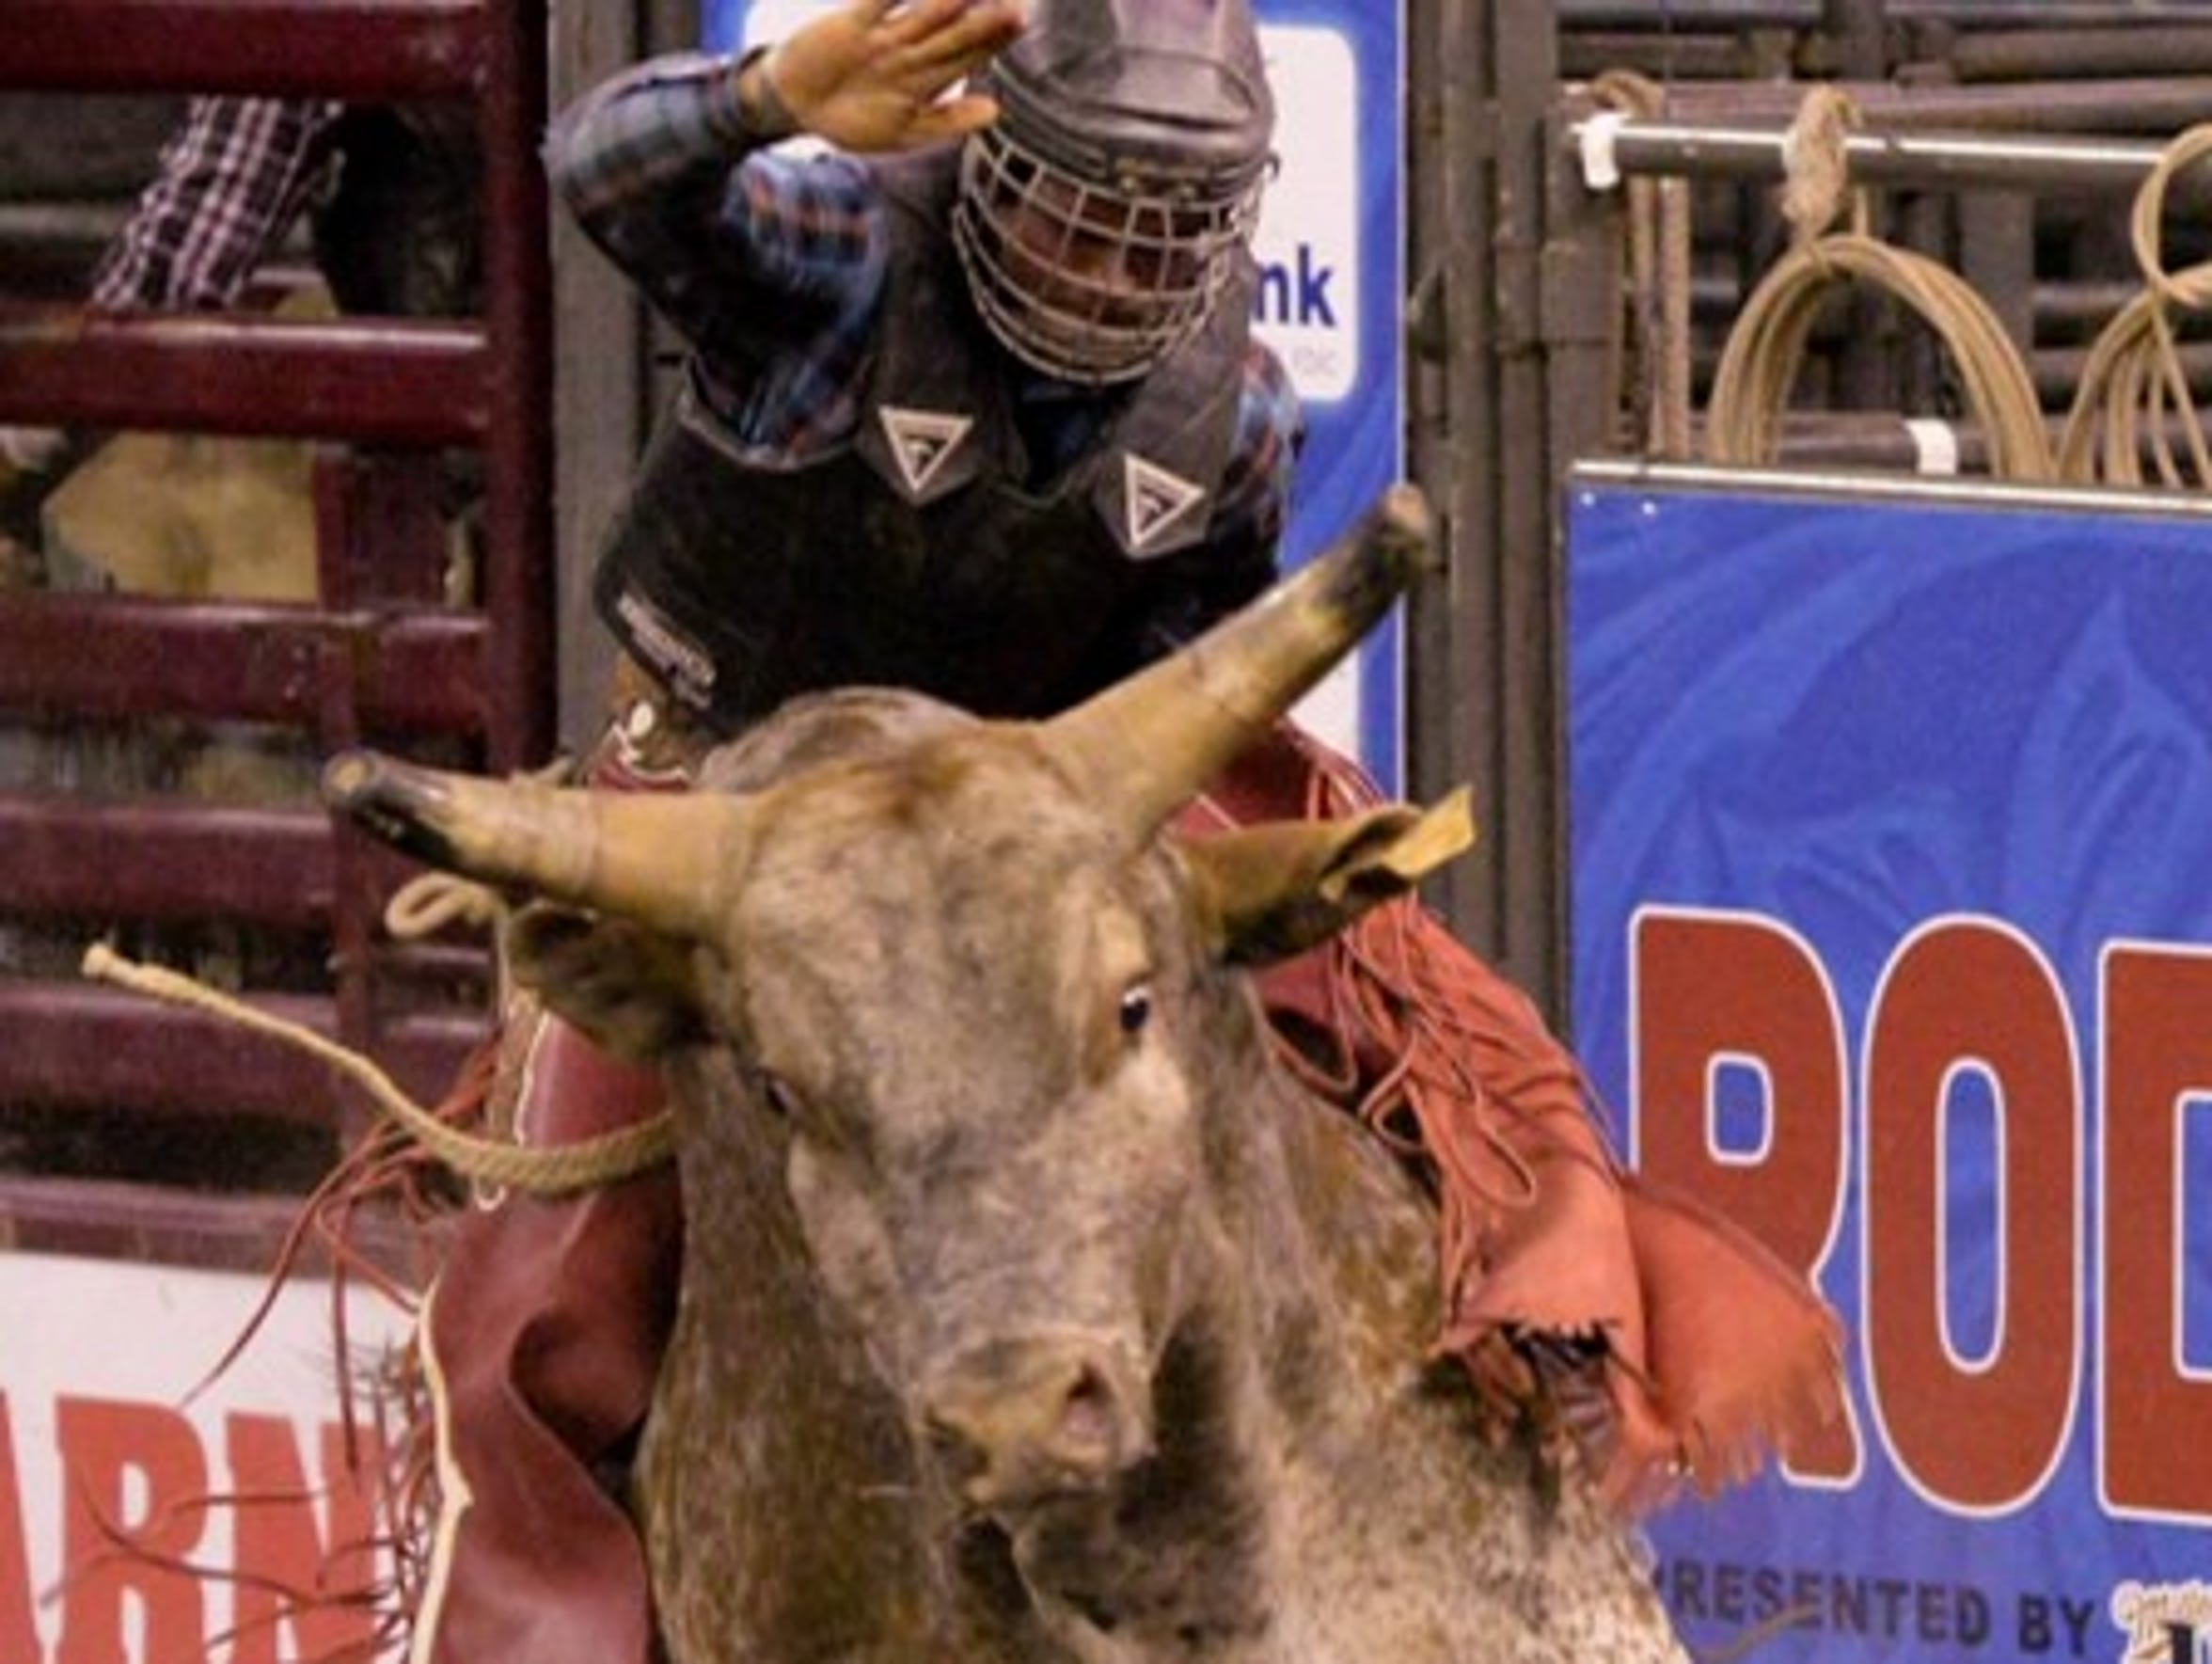 Rodeo Corpus Christi draws contestants from all over